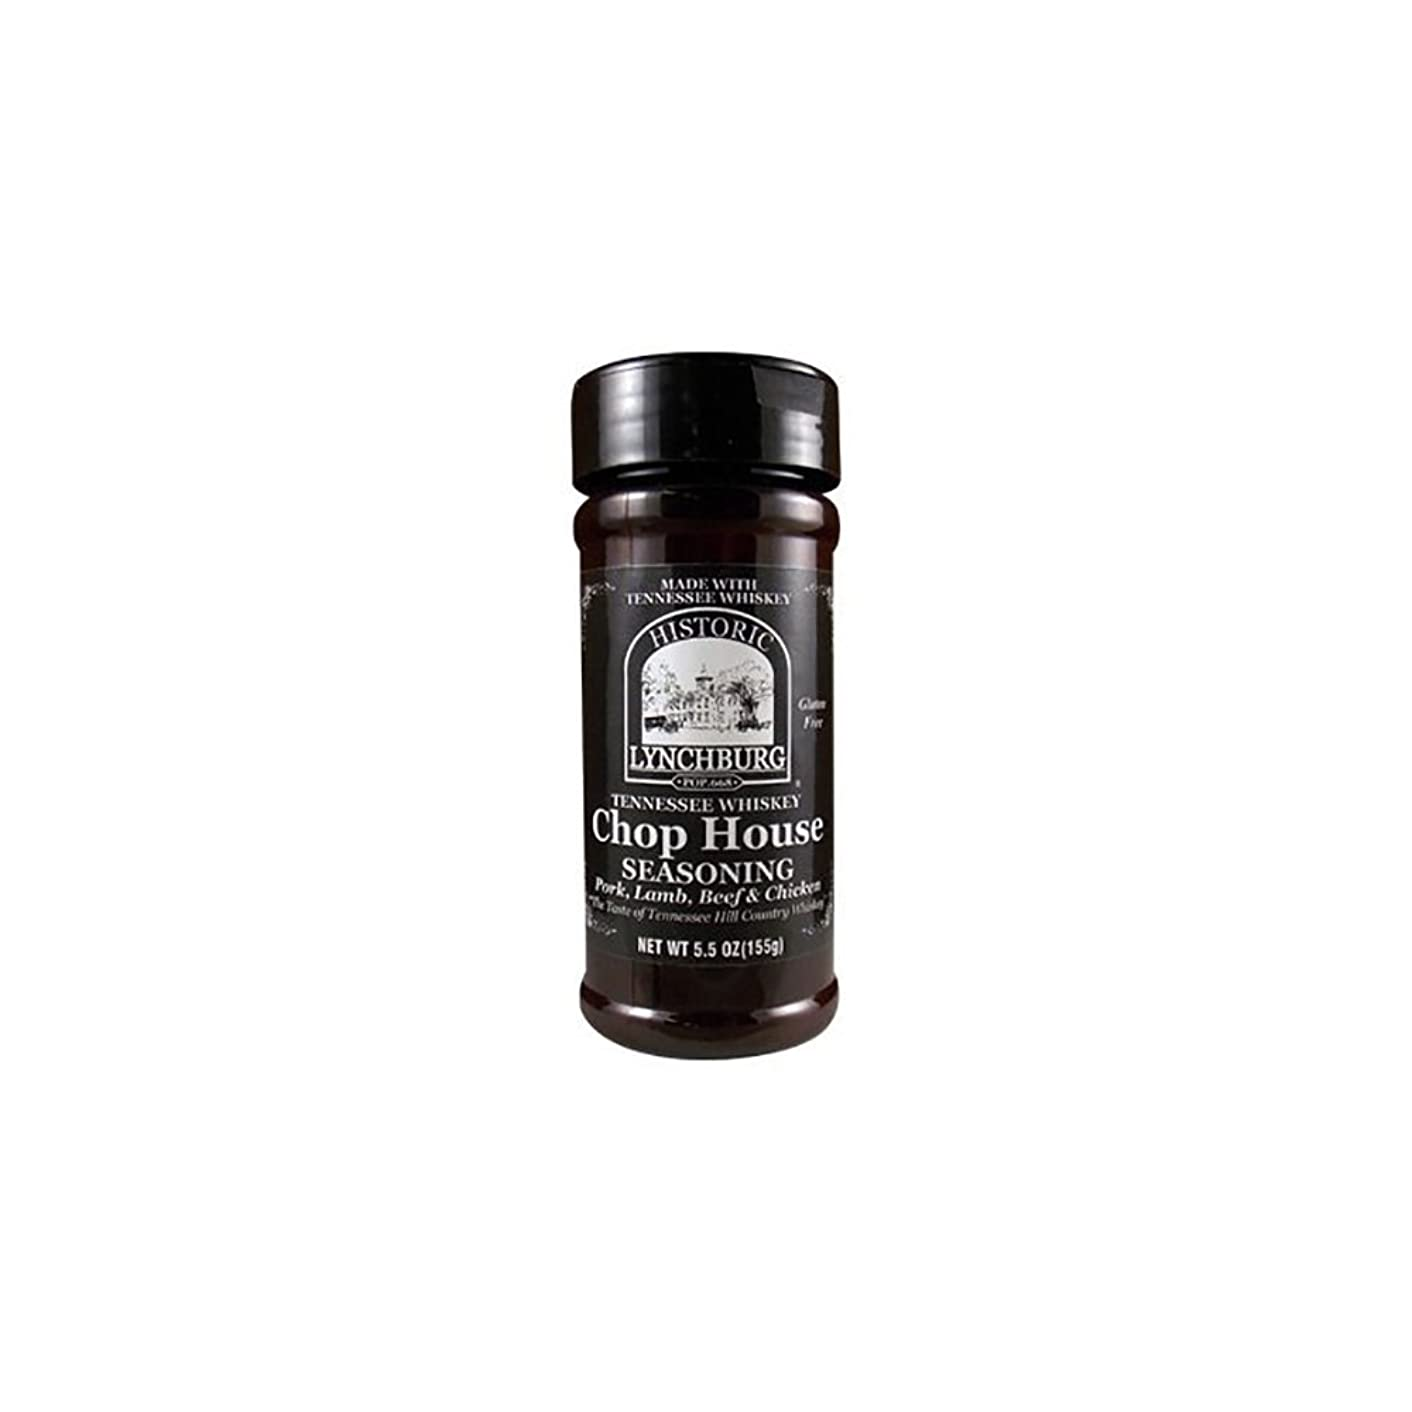 Retailsource Lynchburg Tennessee Chop House Seasoning, 5.5 Ounce